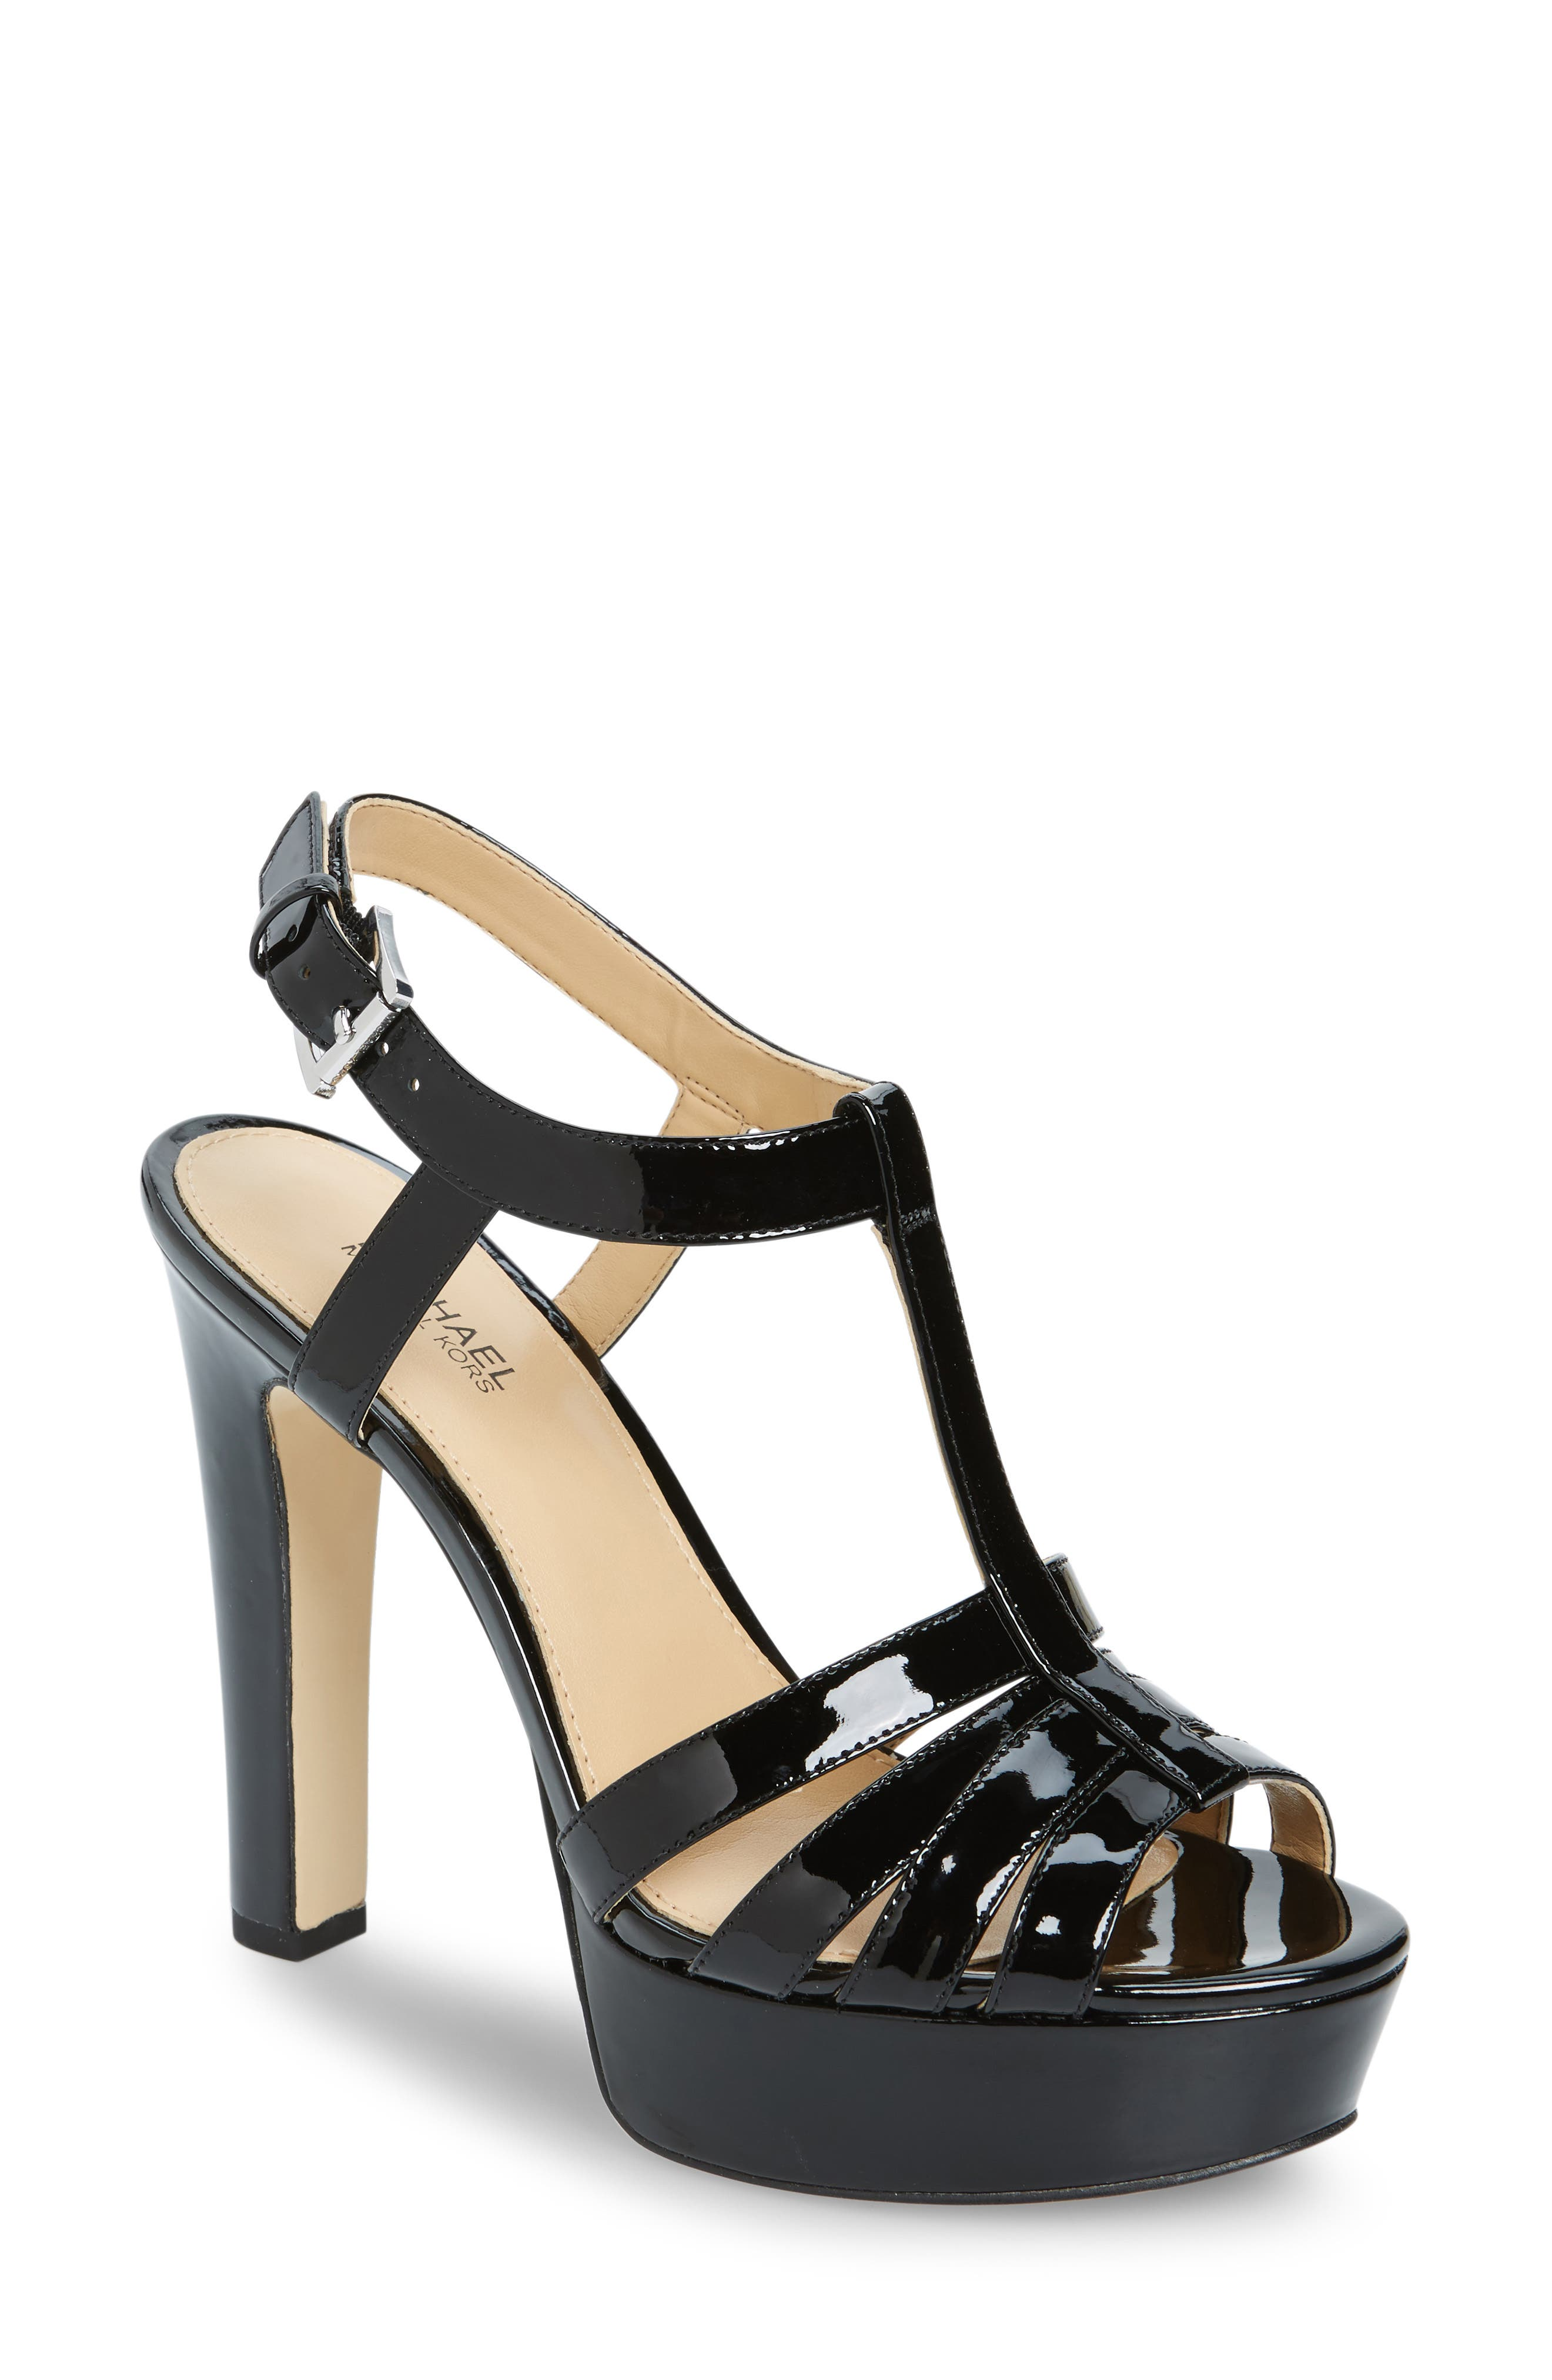 Alternate Image 1 Selected - MICHAEL Michael Kors Catalina Platform Sandal (Women)